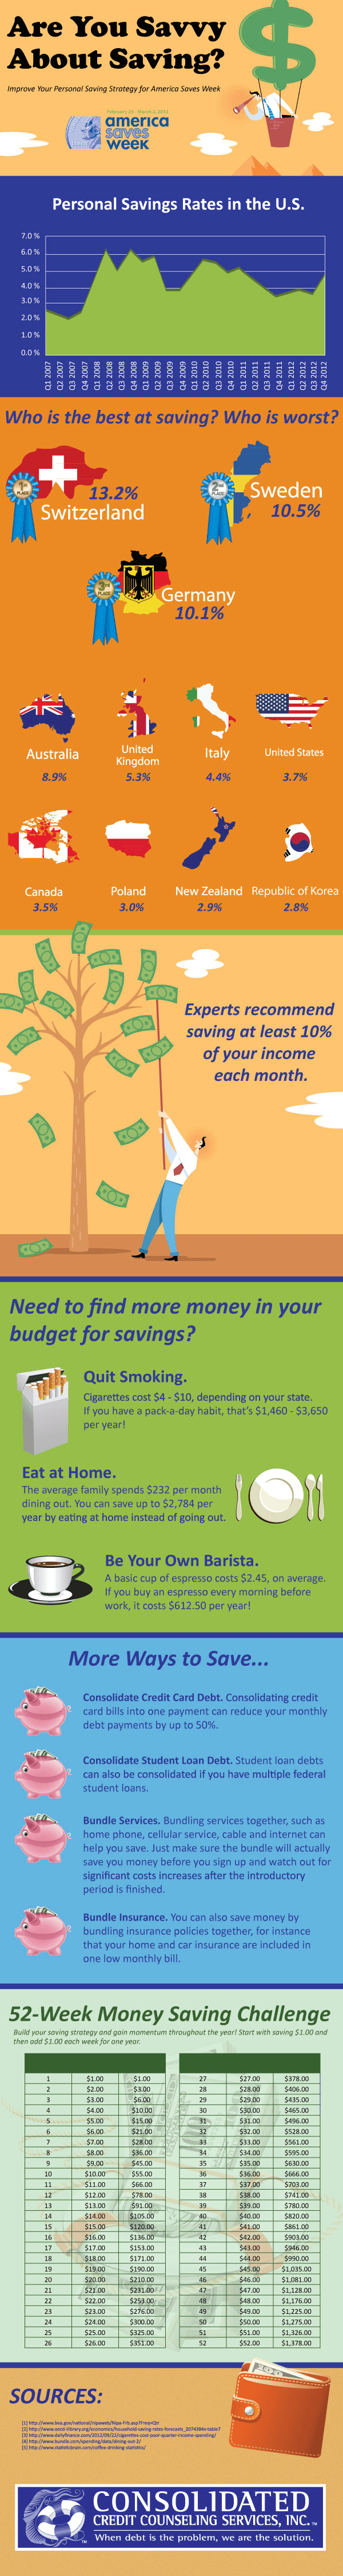 Are you savvy about saving